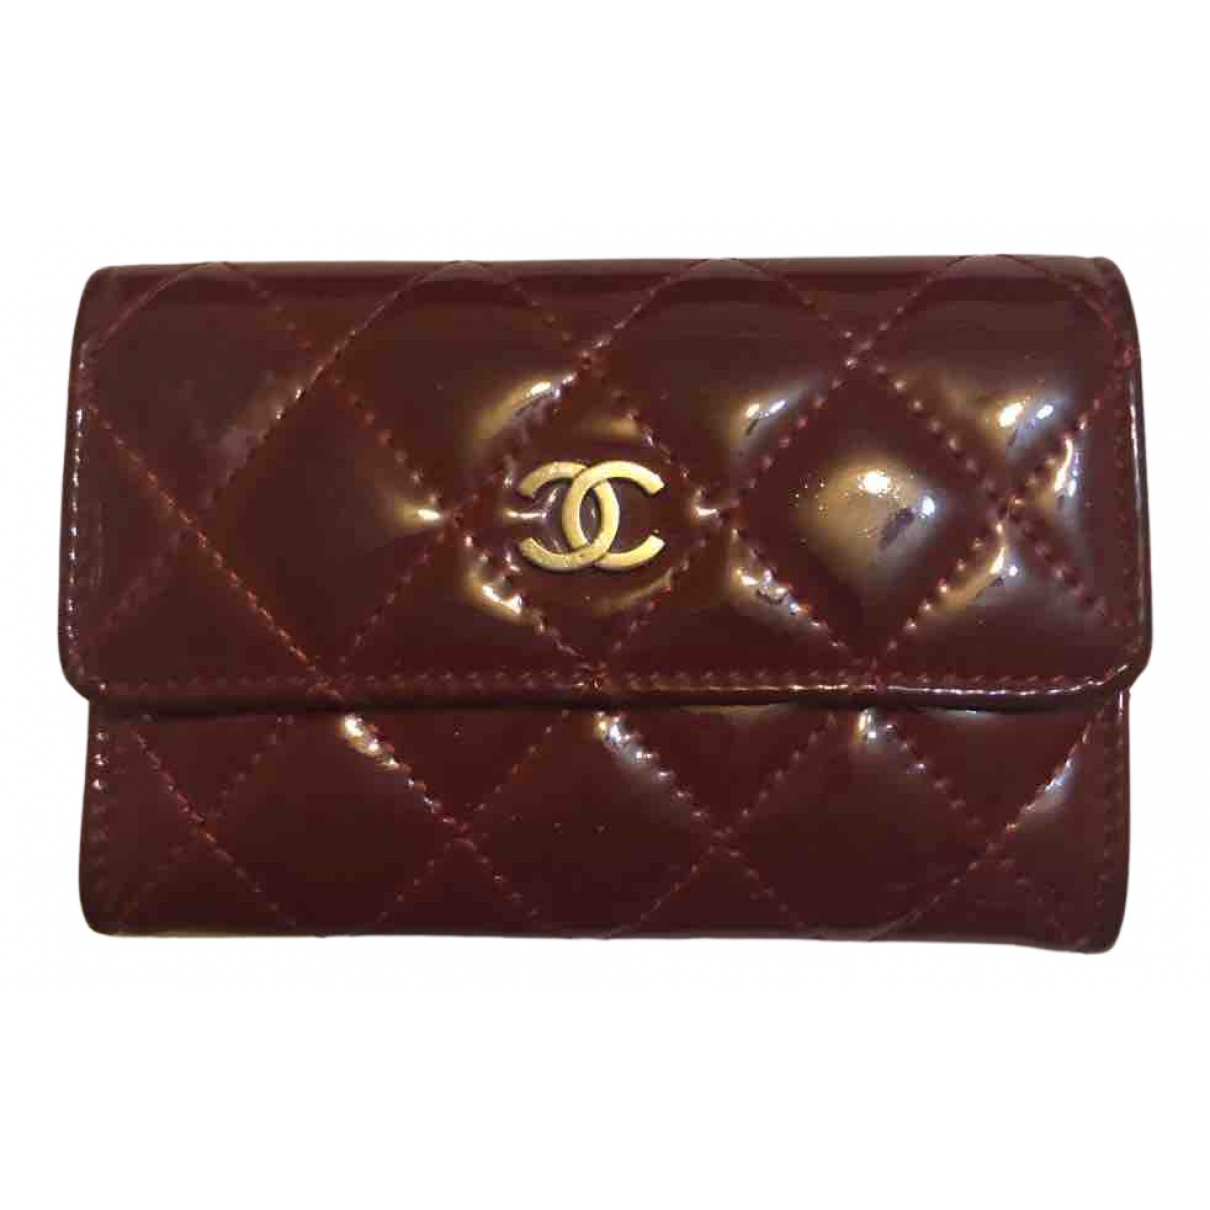 Chanel N Burgundy Patent leather wallet for Women N